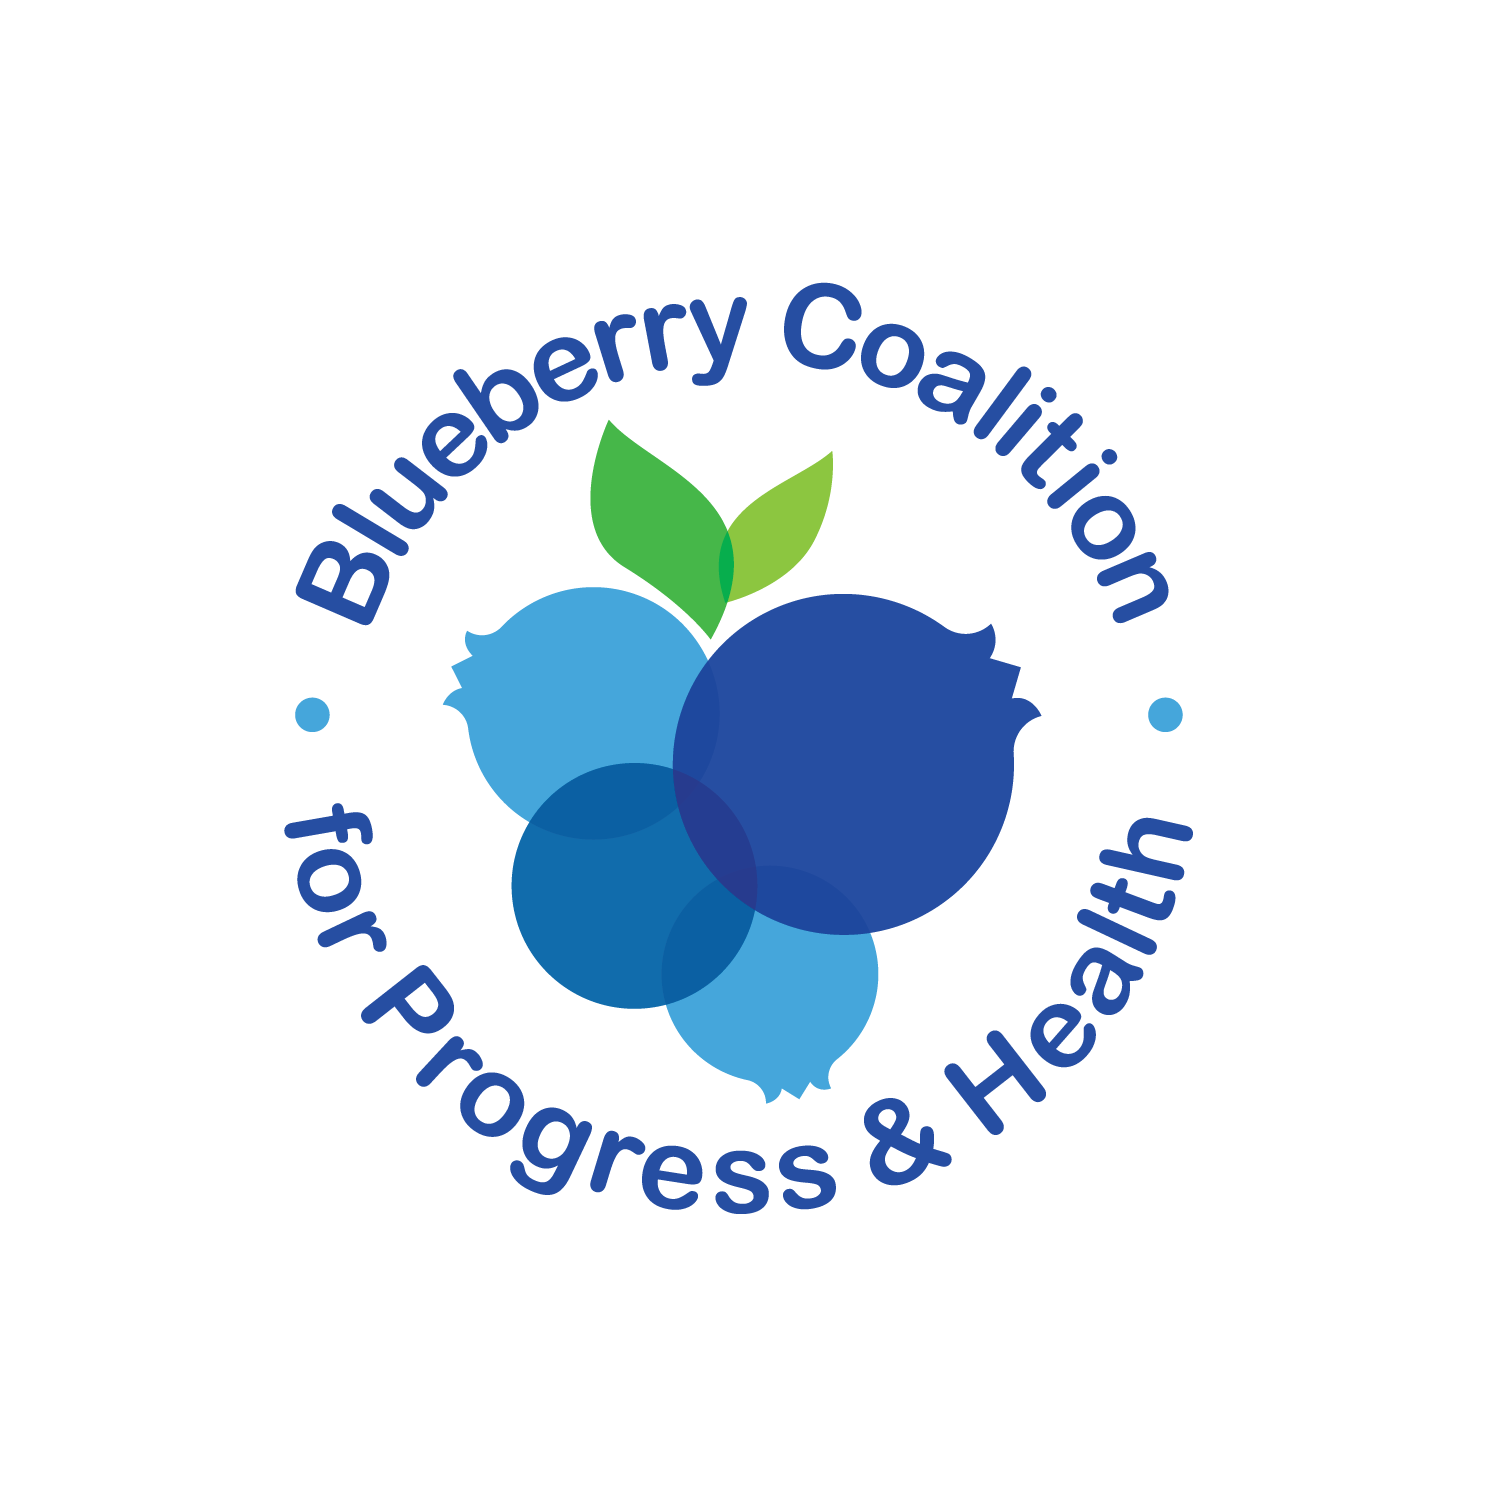 Blueberry Coalition for Progress and Health